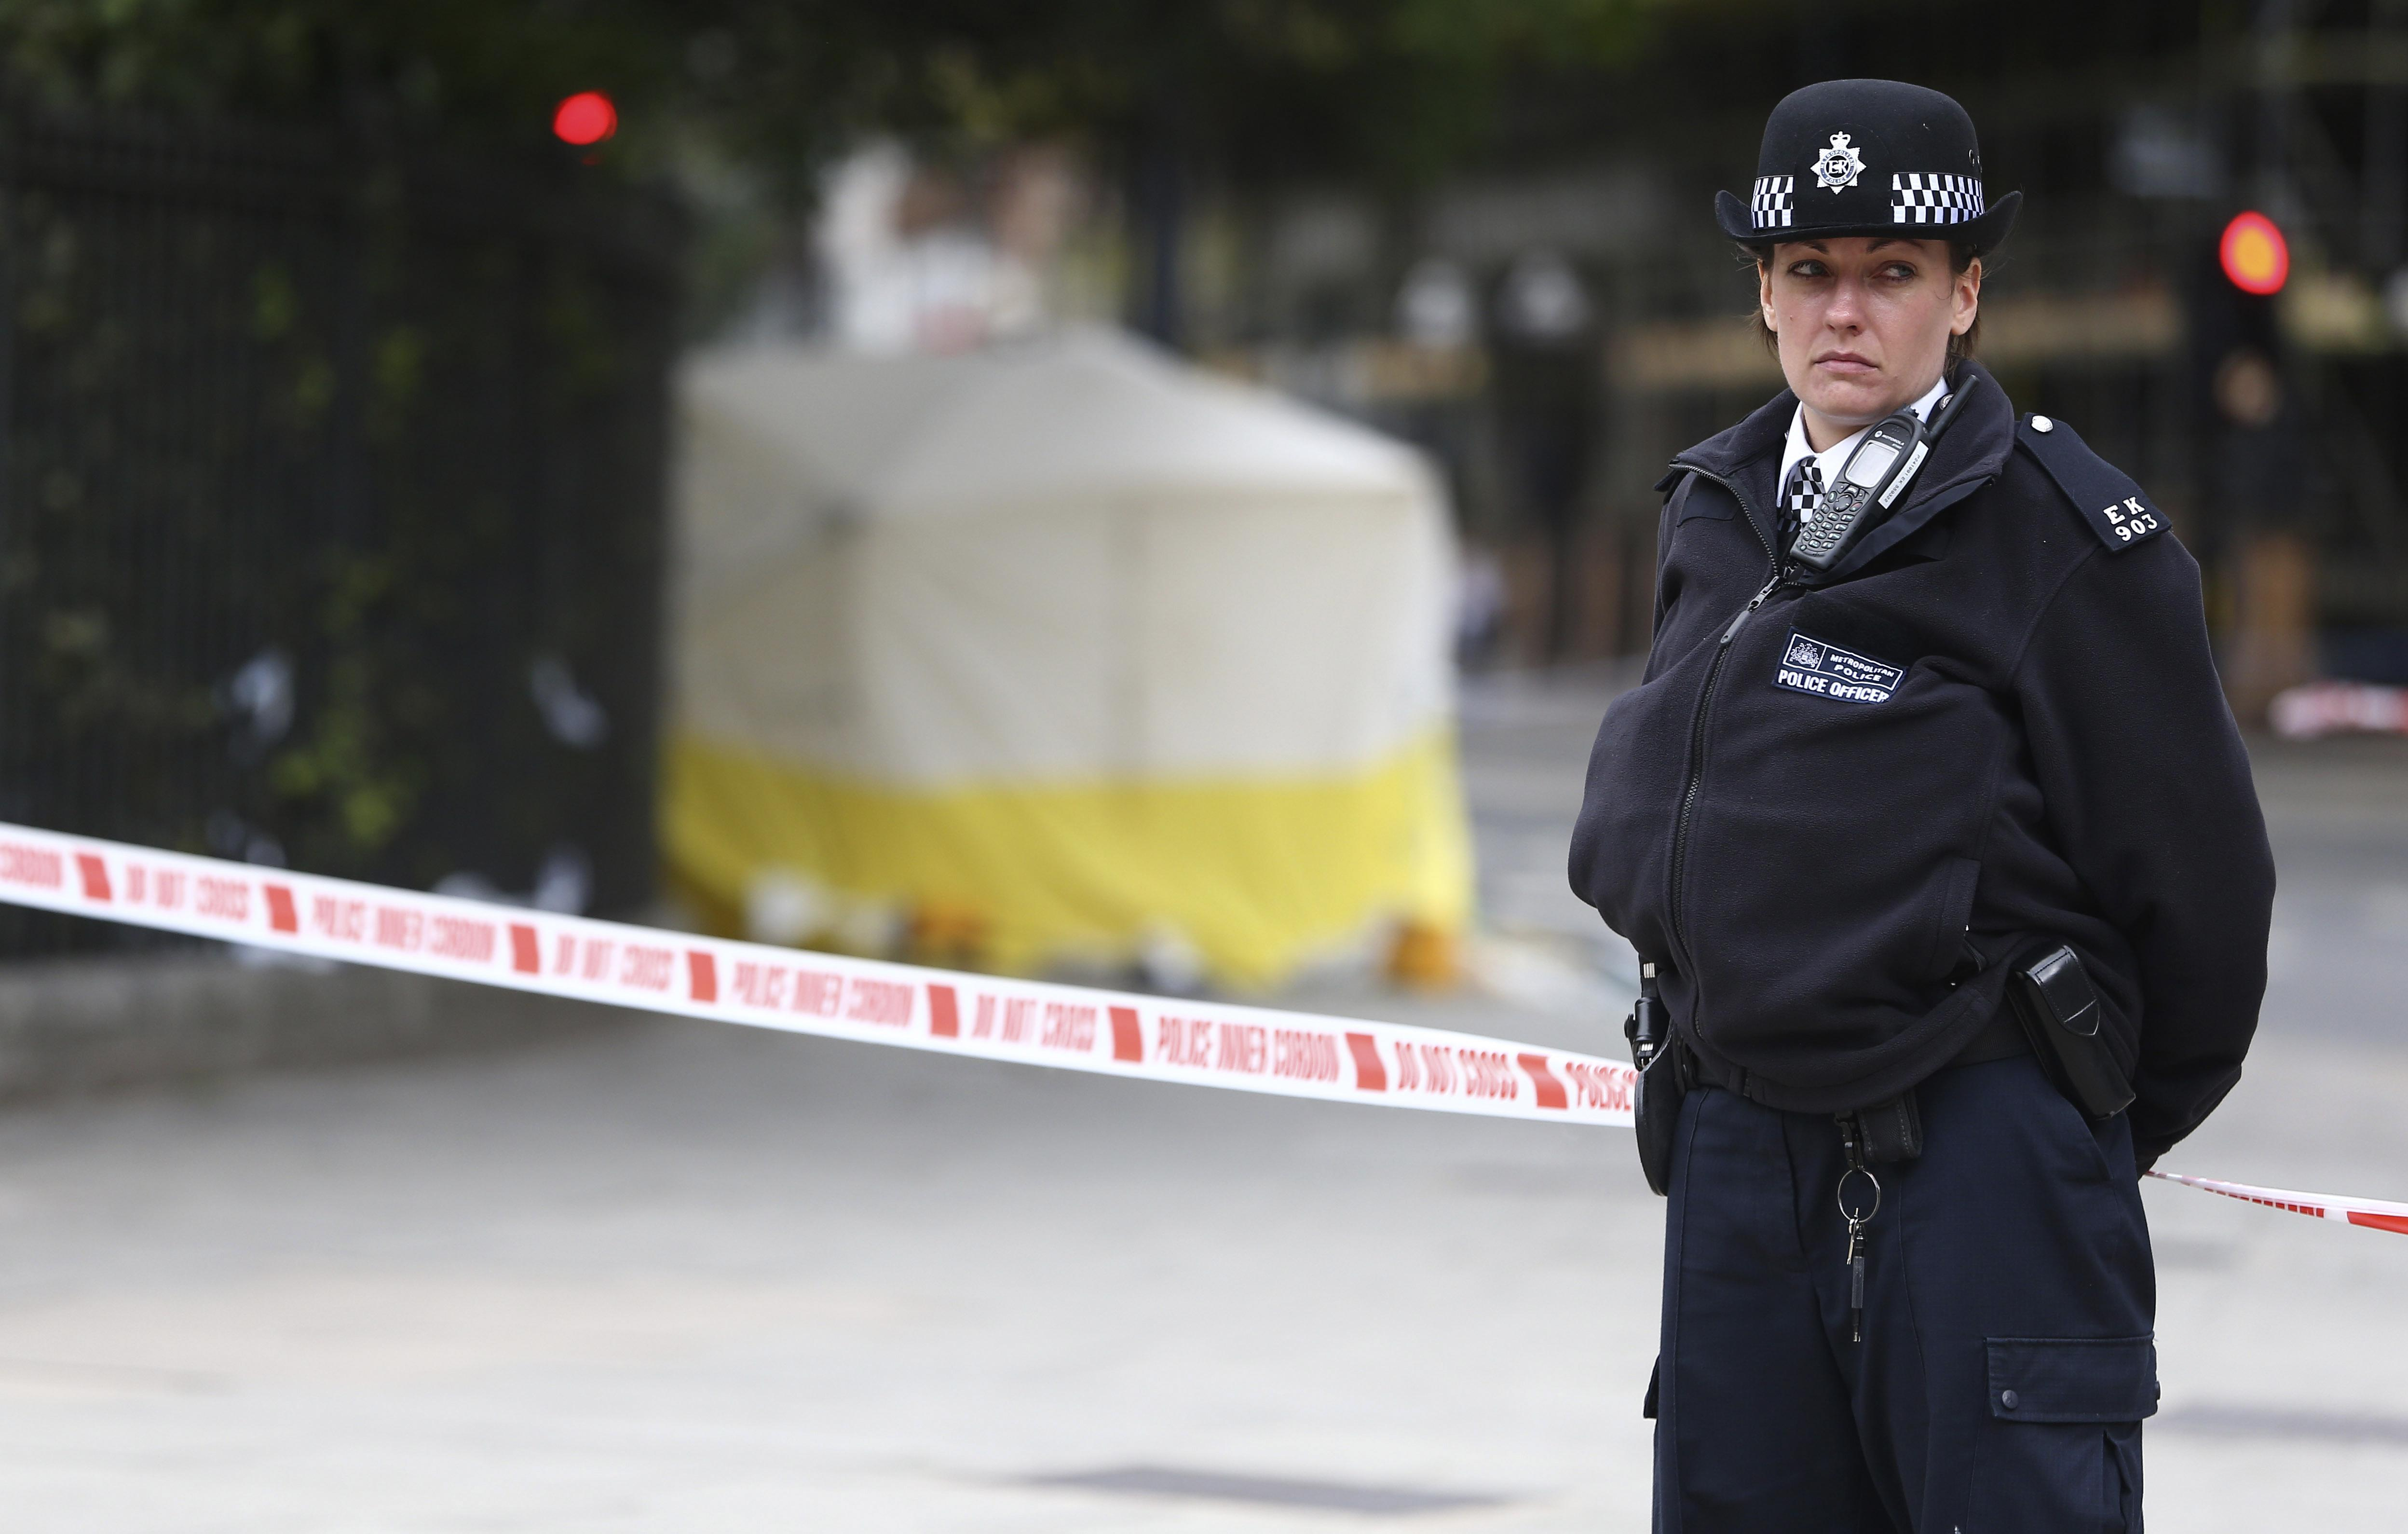 London Knife Attack